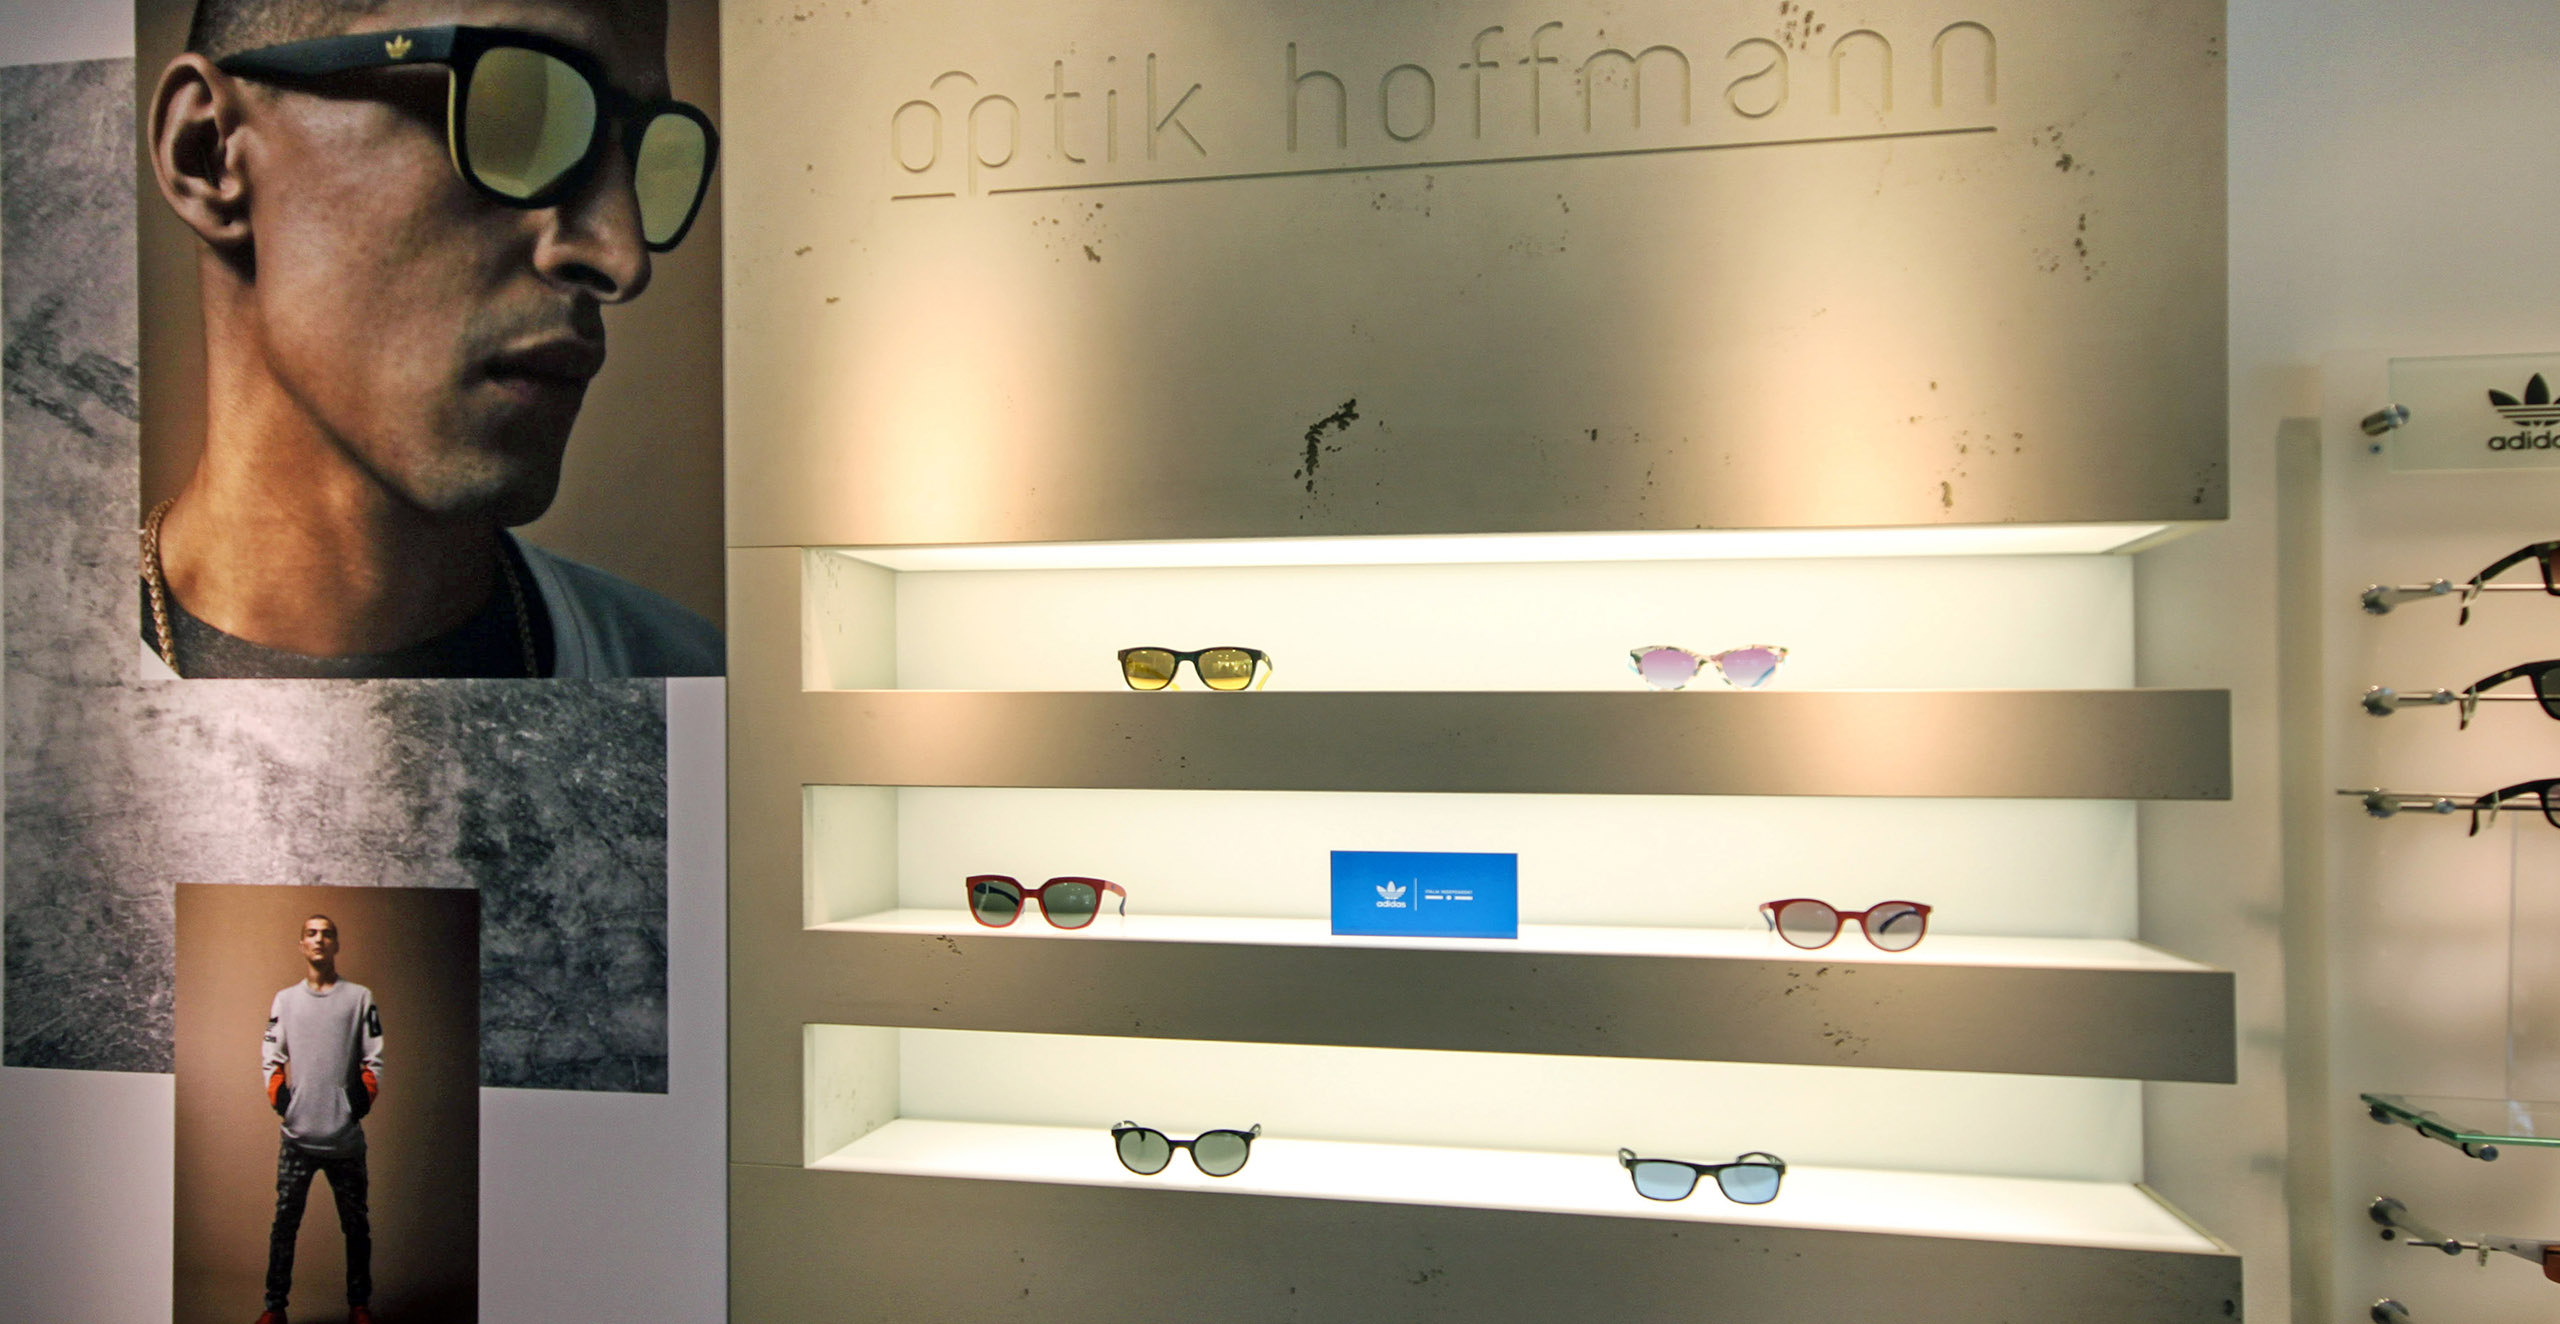 Optik Hoffmann